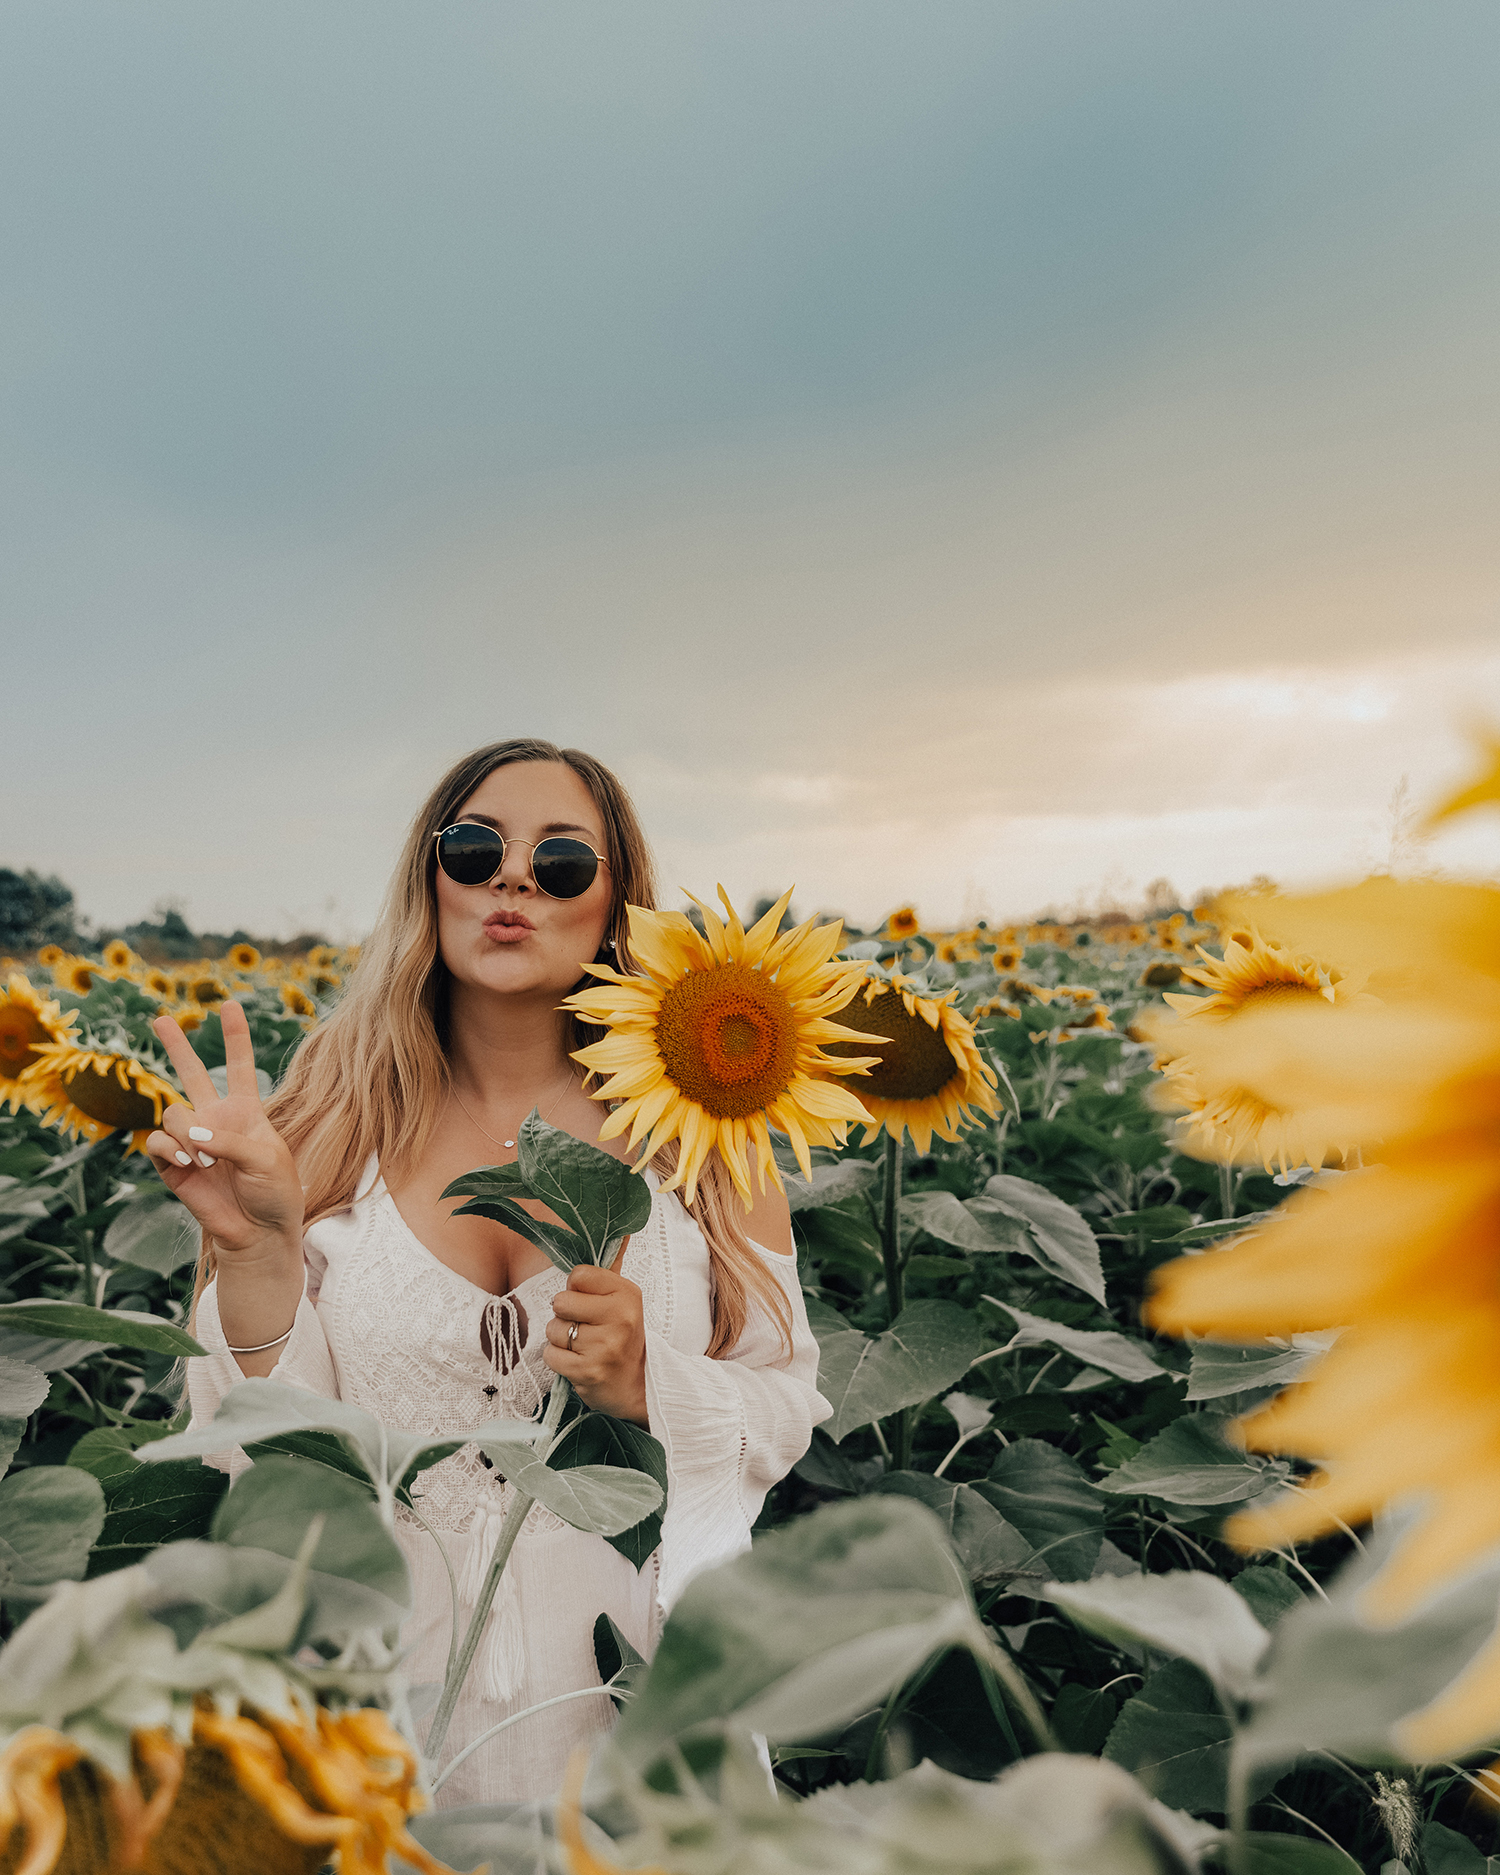 Things to Do in Slavonia, Croatia | Take Photos in Sunflower Fields